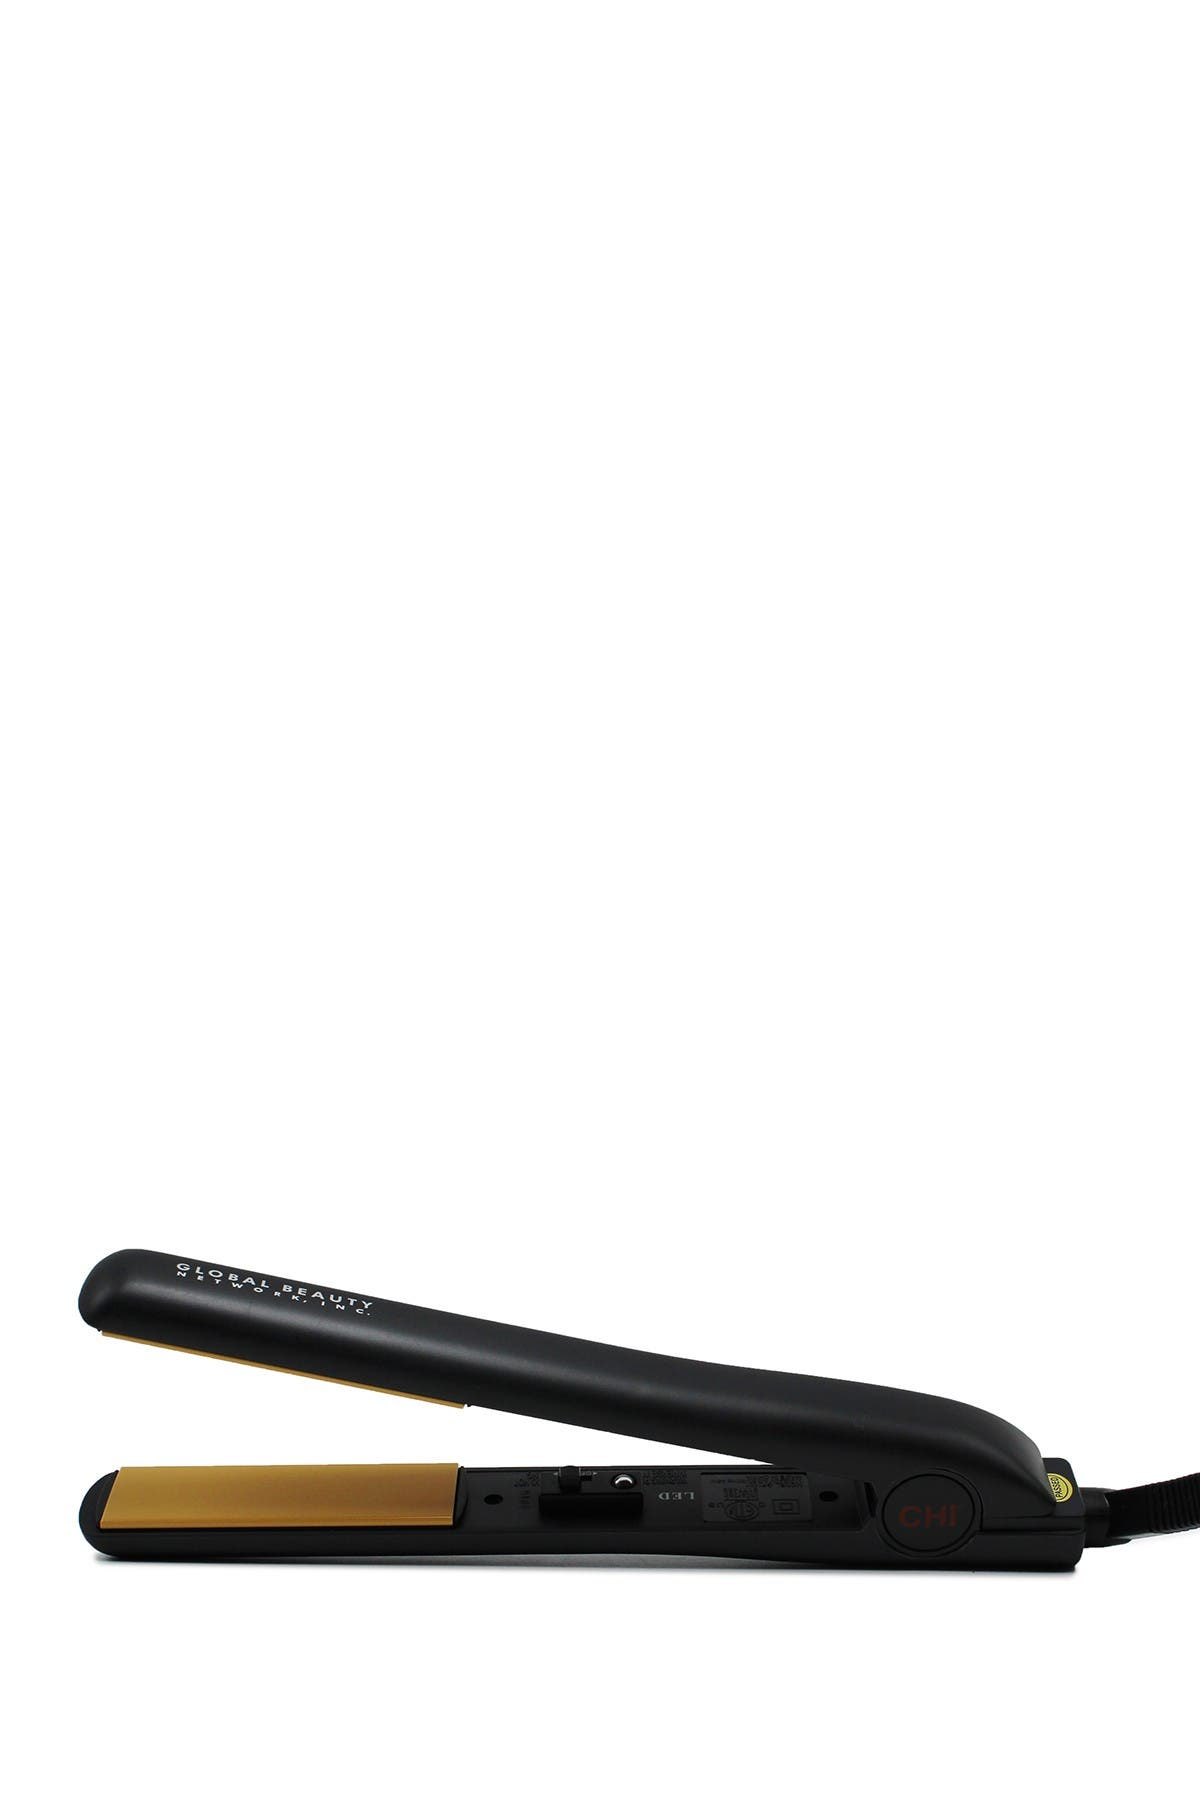 "Image of CHI Original 1"" Ceramic Hairstyling Iron"